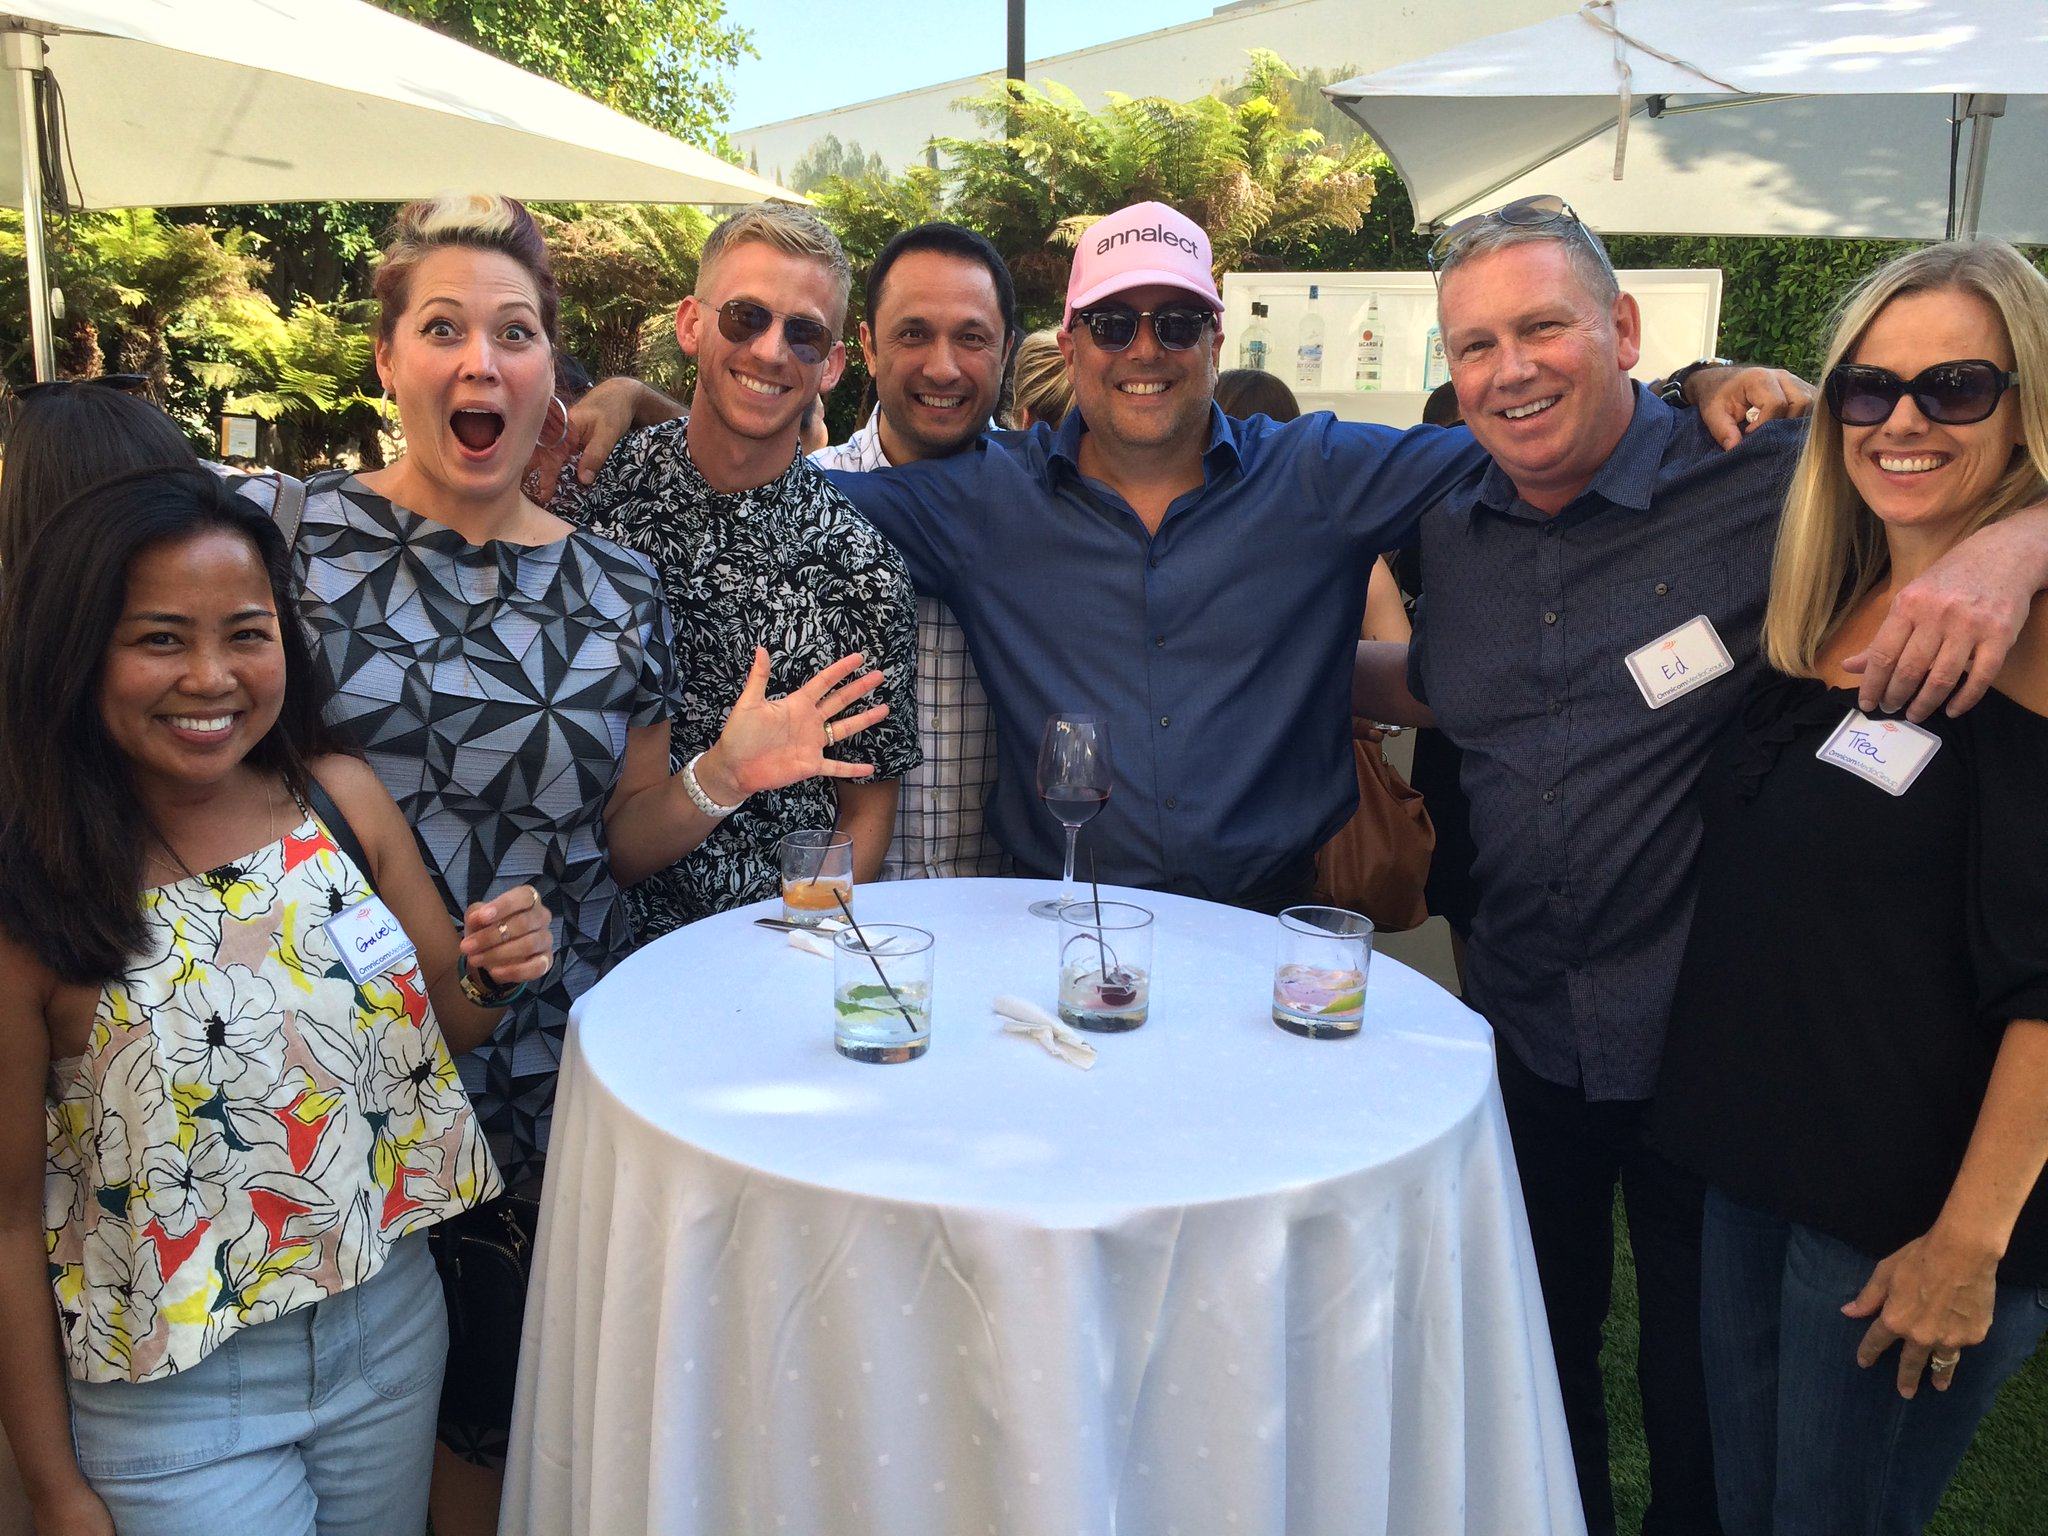 We had so much fun at last month's Summer Party in L.A.  Crazy to think that the Summer is nearly over! #omdlife https://t.co/U4MZm651rB